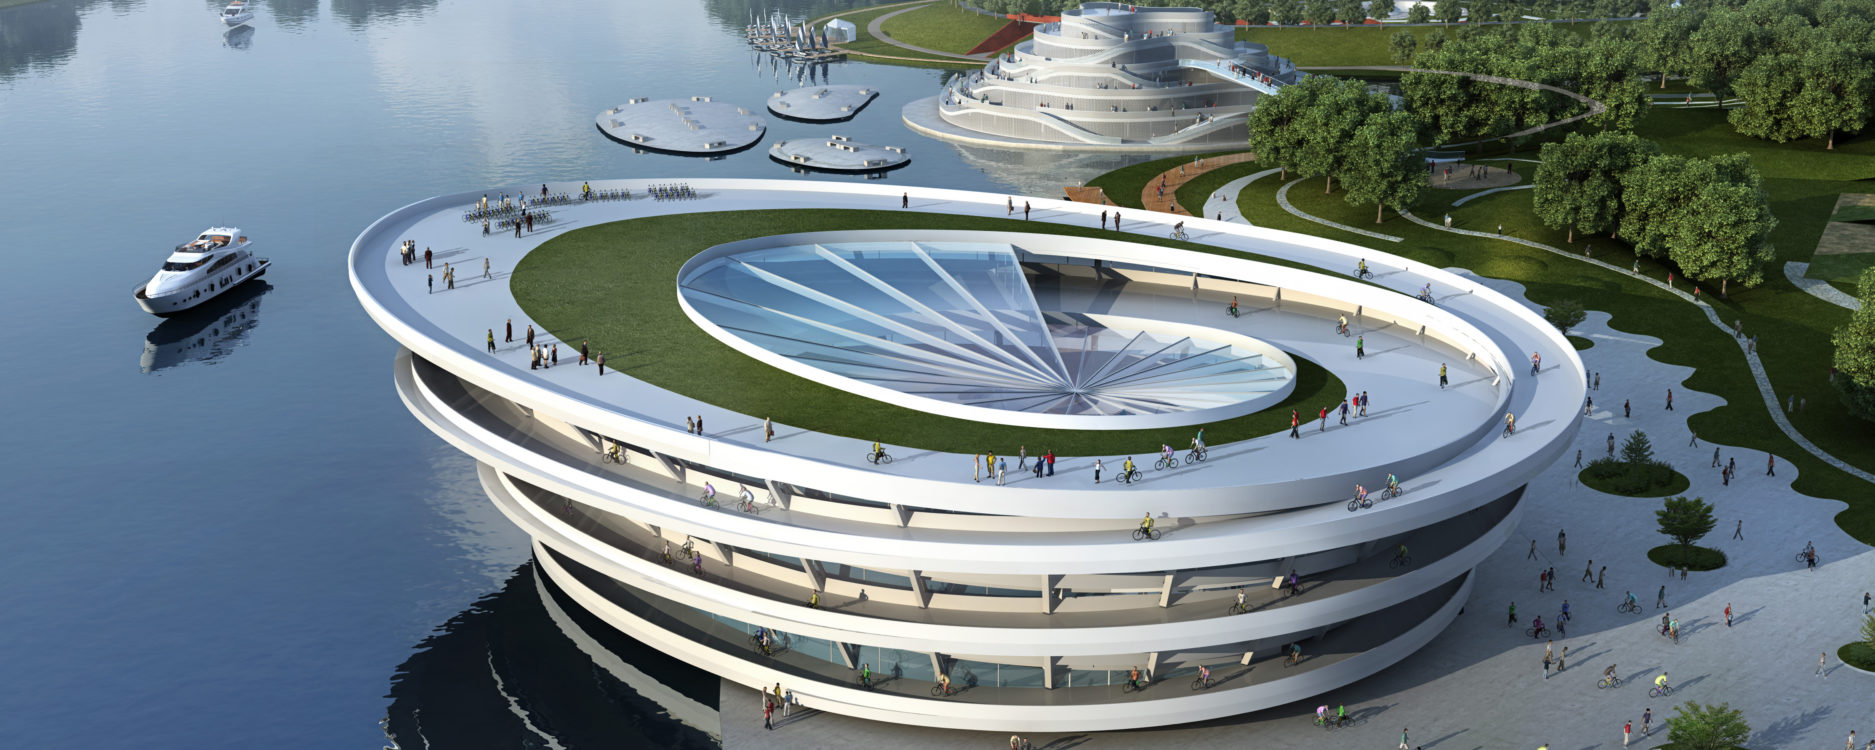 Bicycle Architecture Biennale